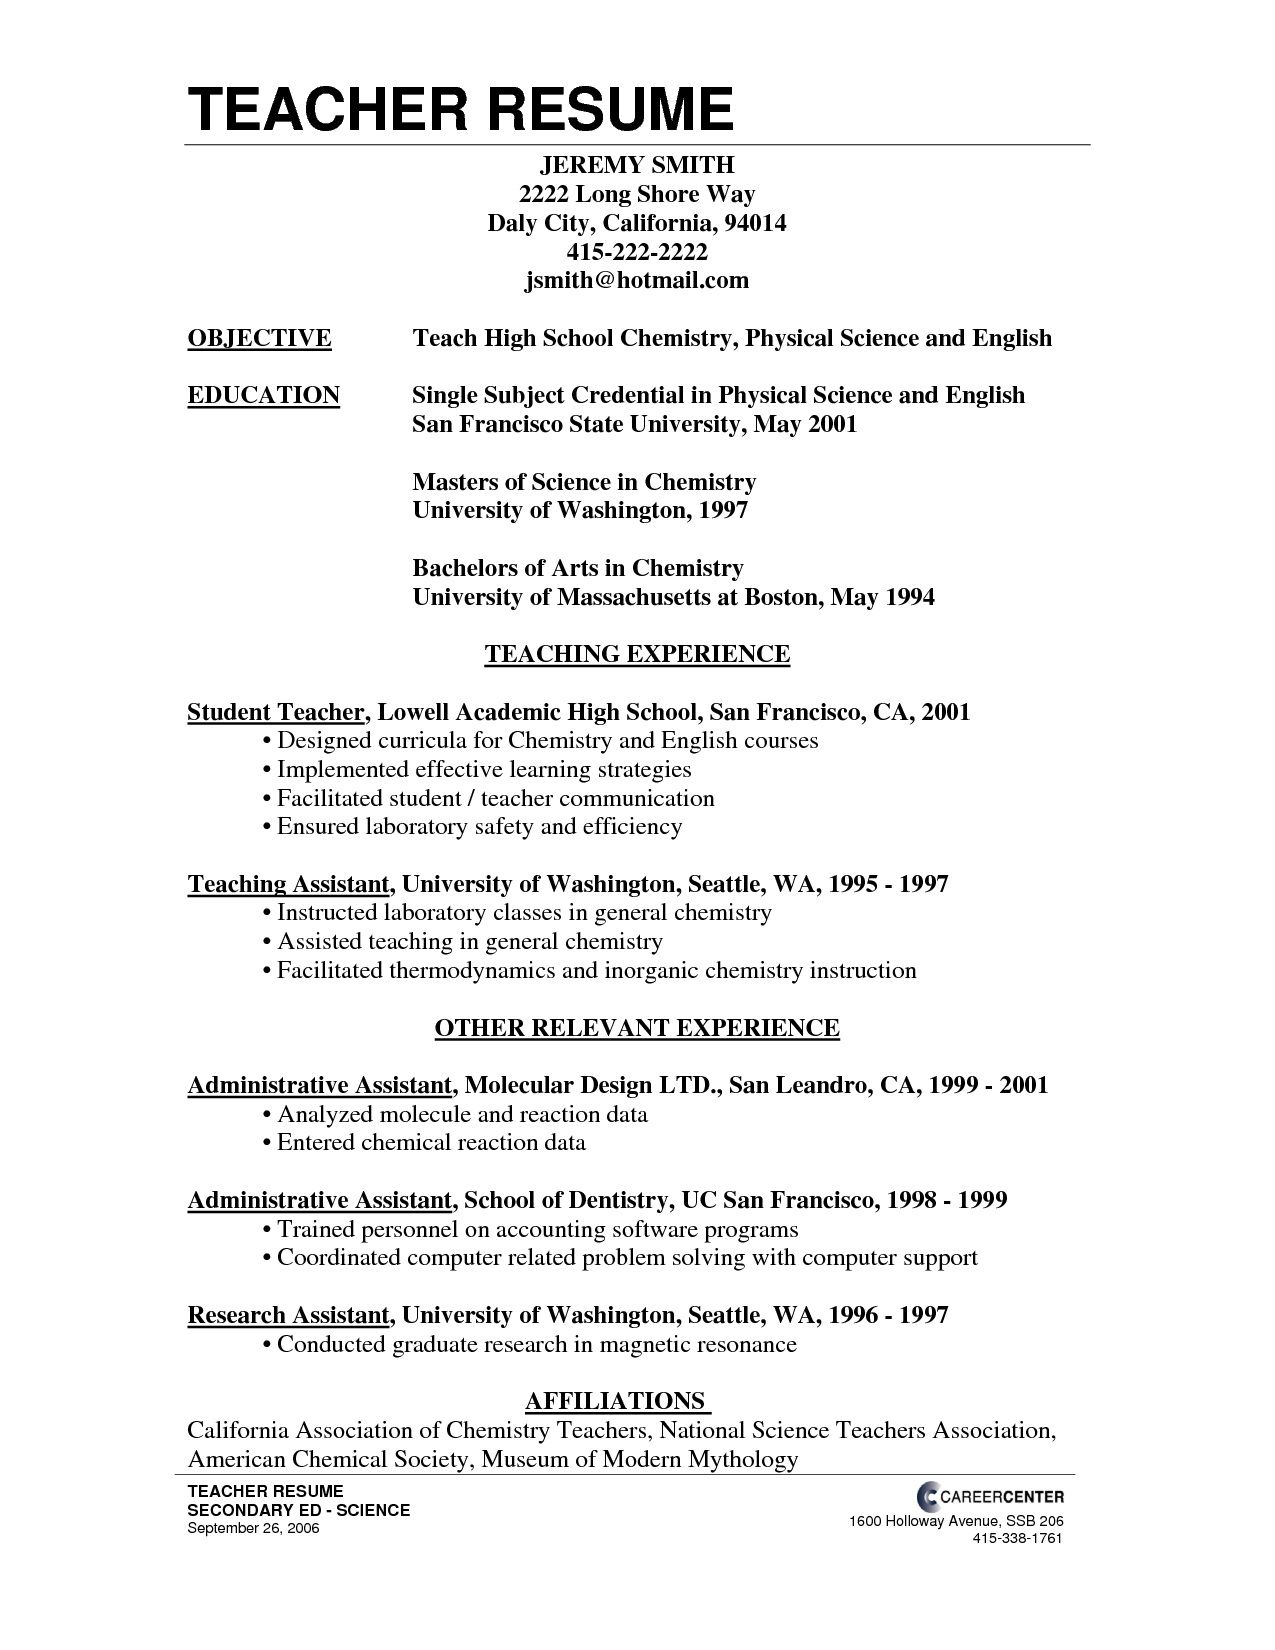 Art And Craft Teacher Resume High School Teacher Resume Http Jobresumesample